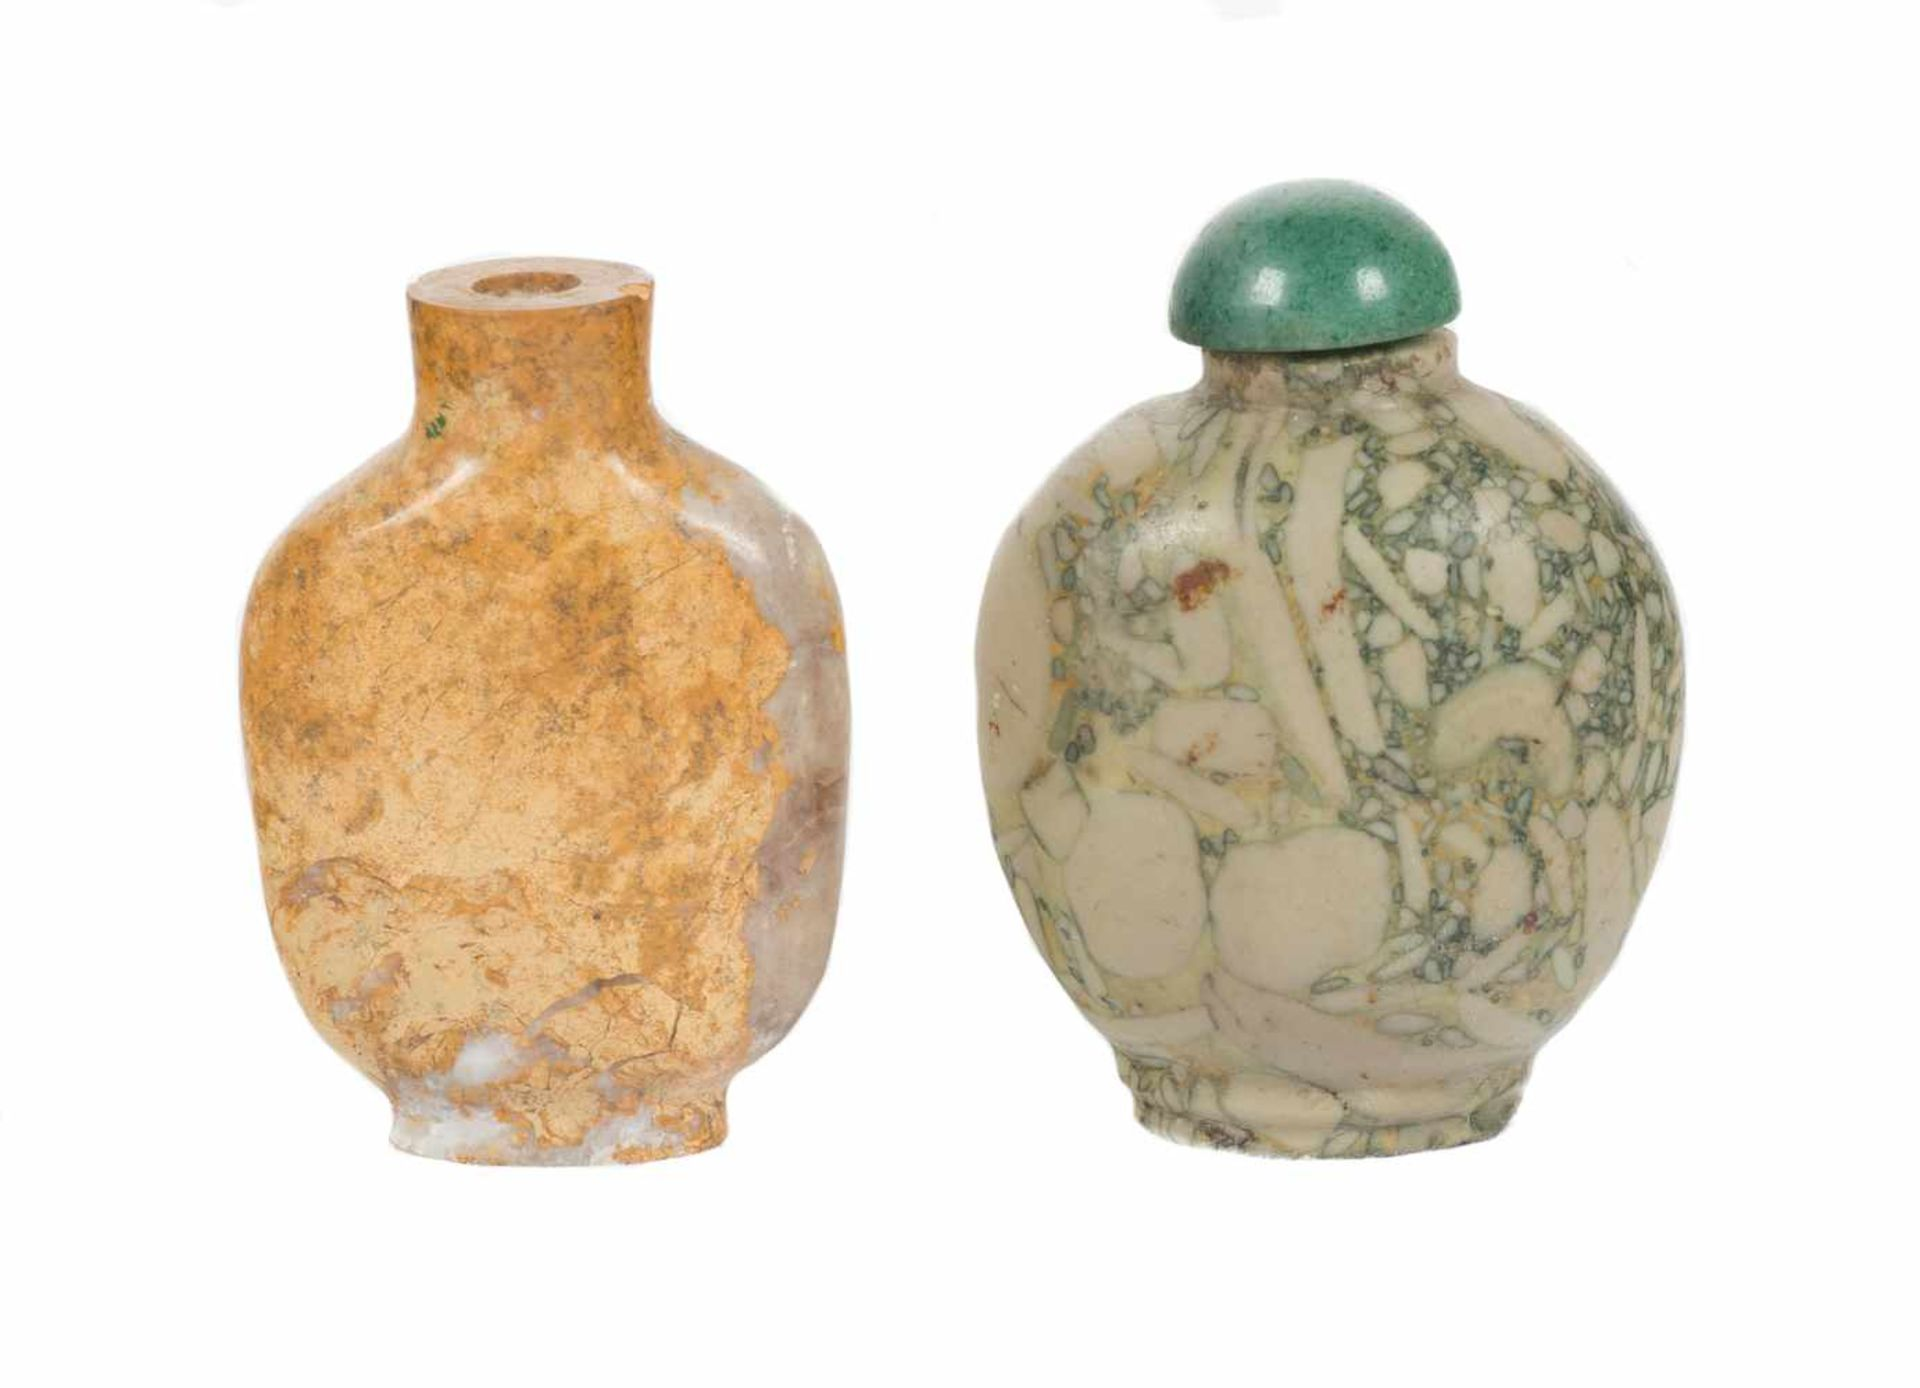 Los 29 - A pair of Chinese snuff bottles in carved pudding stone. China. Qing dynasty. Late 19th century -